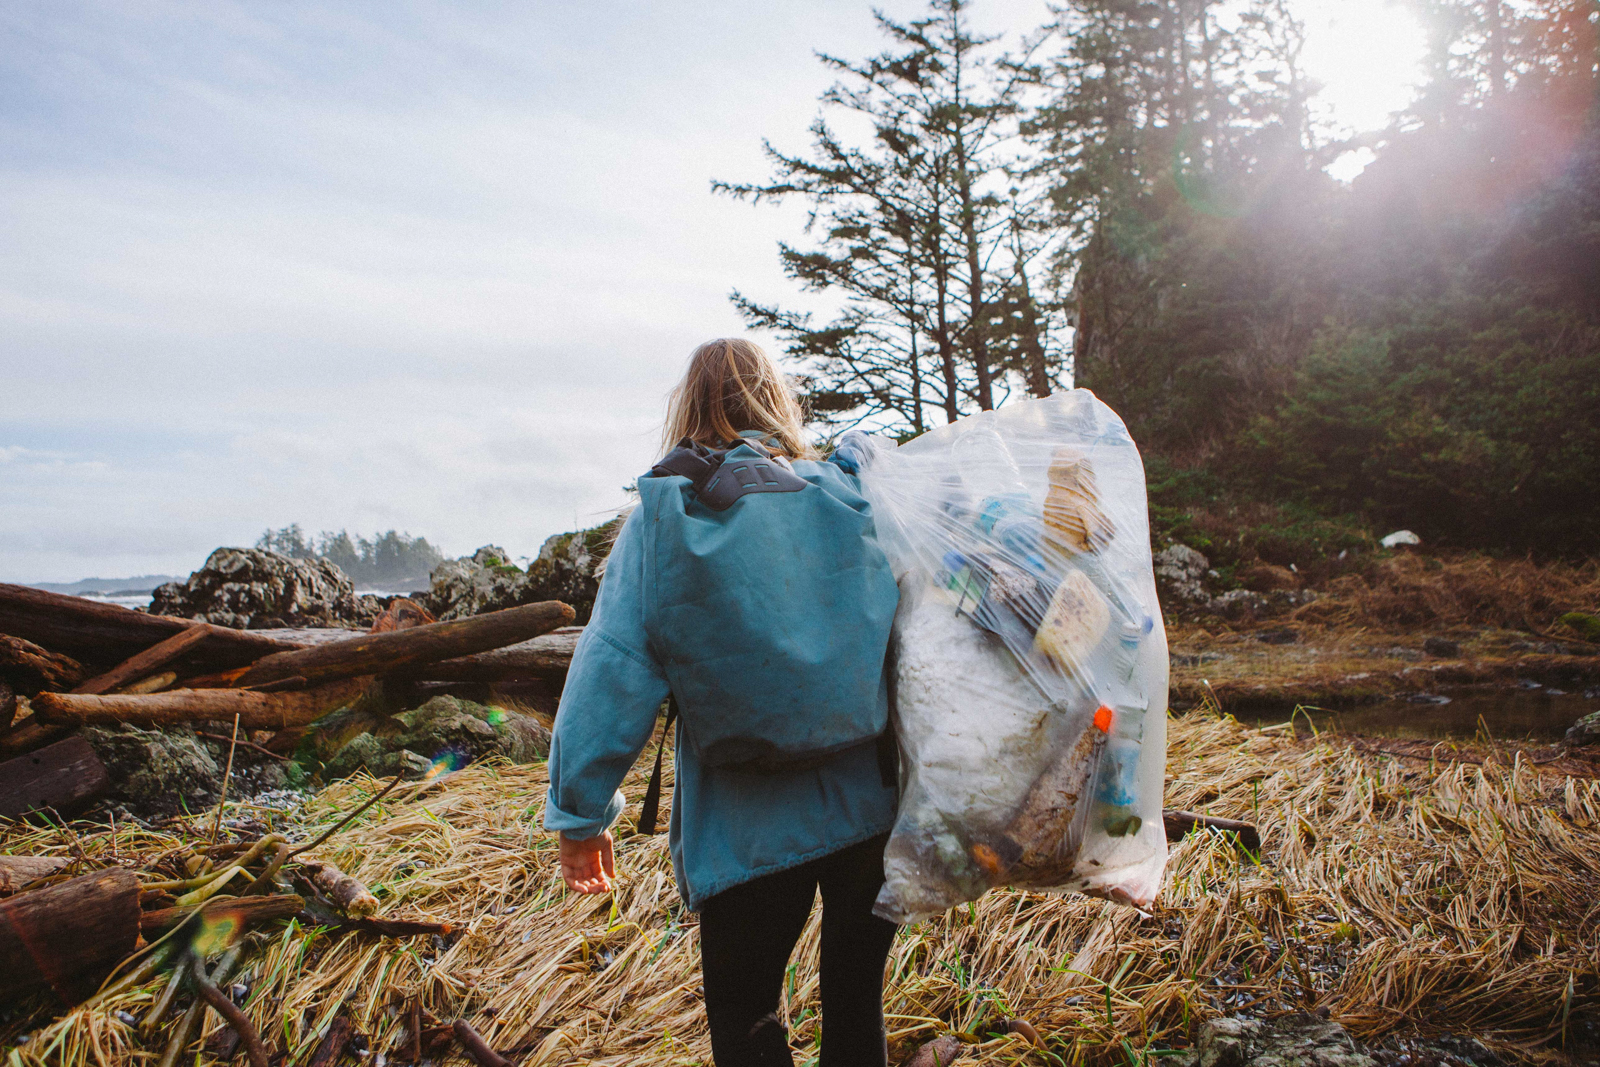 Plastic Pollution pileup on Canada's beaches exposes environmental policy gaps - Thousands of kilograms of plastic garbage are piling up on the seabed and on Canada's shores but the government doesn't yet have a domestic strategy to tackle marine debris.Read more...